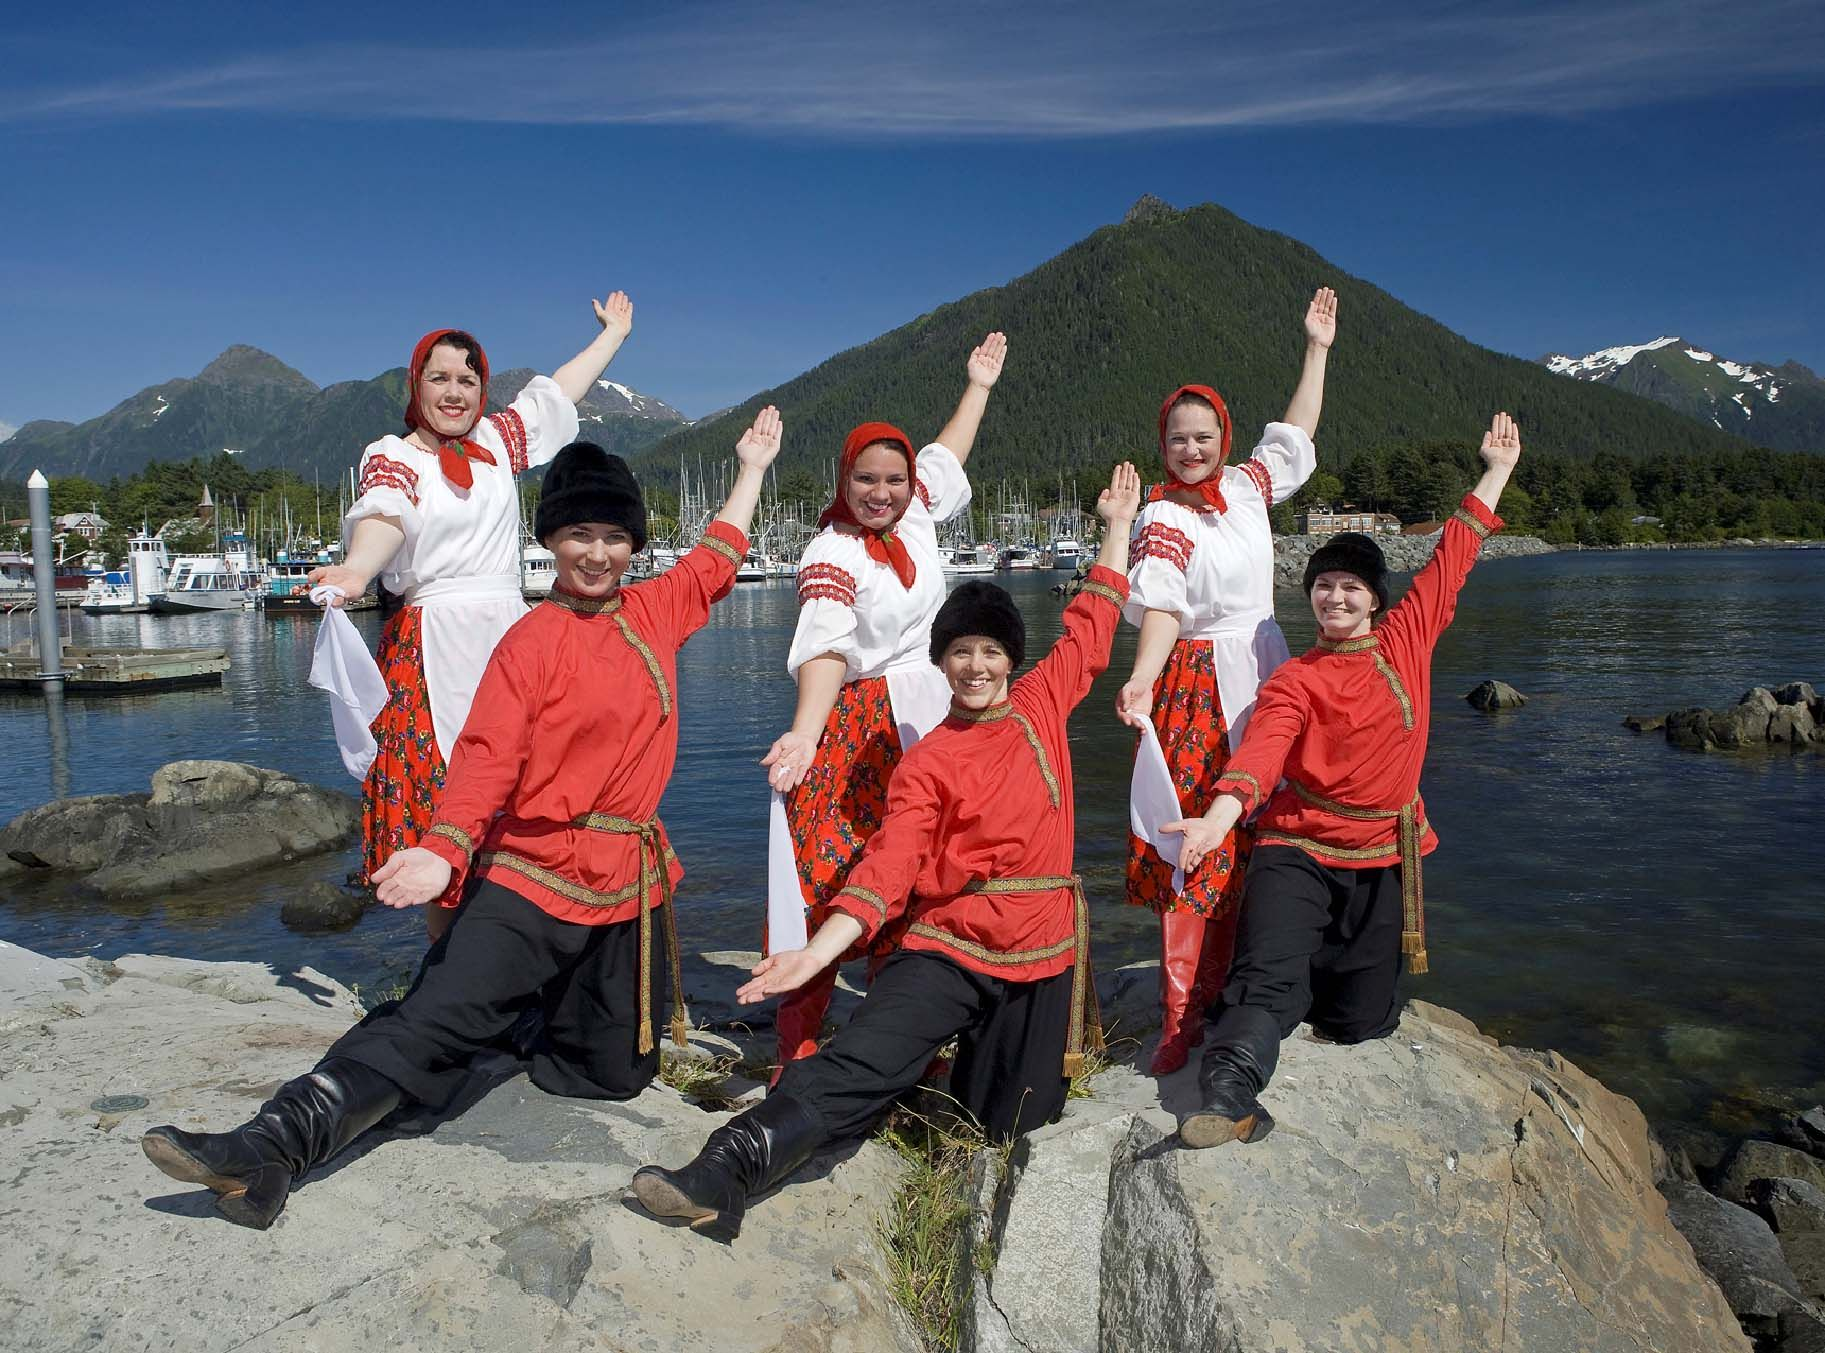 New Archangel Dancers in Sitka Alaska. | Sitka, Russia culture ...